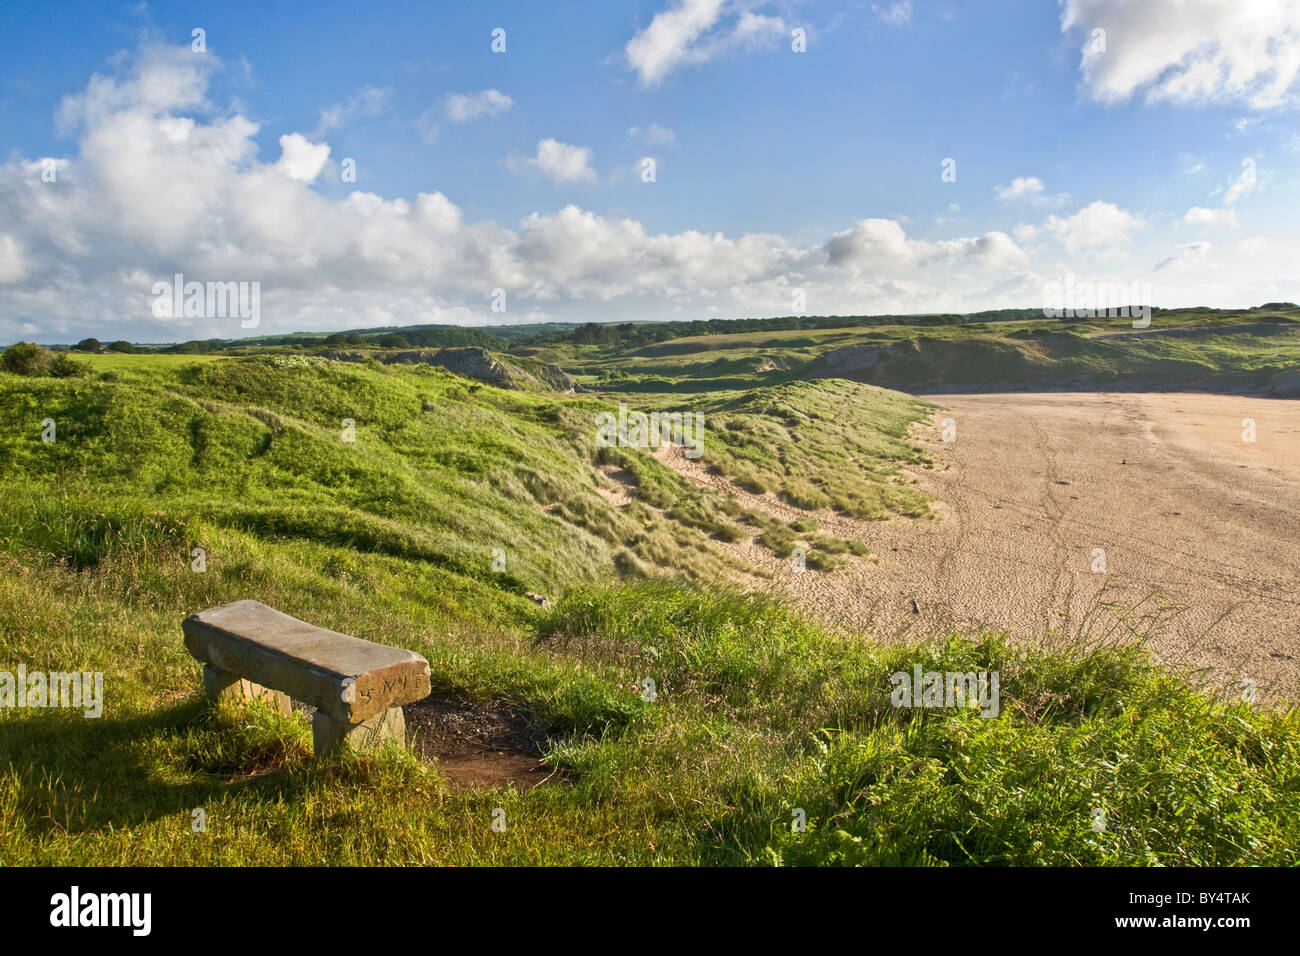 Stone seat overlooking sand dunes and beach at Broad Haven South, Pembrokeshire. Very early morning. - Stock Image